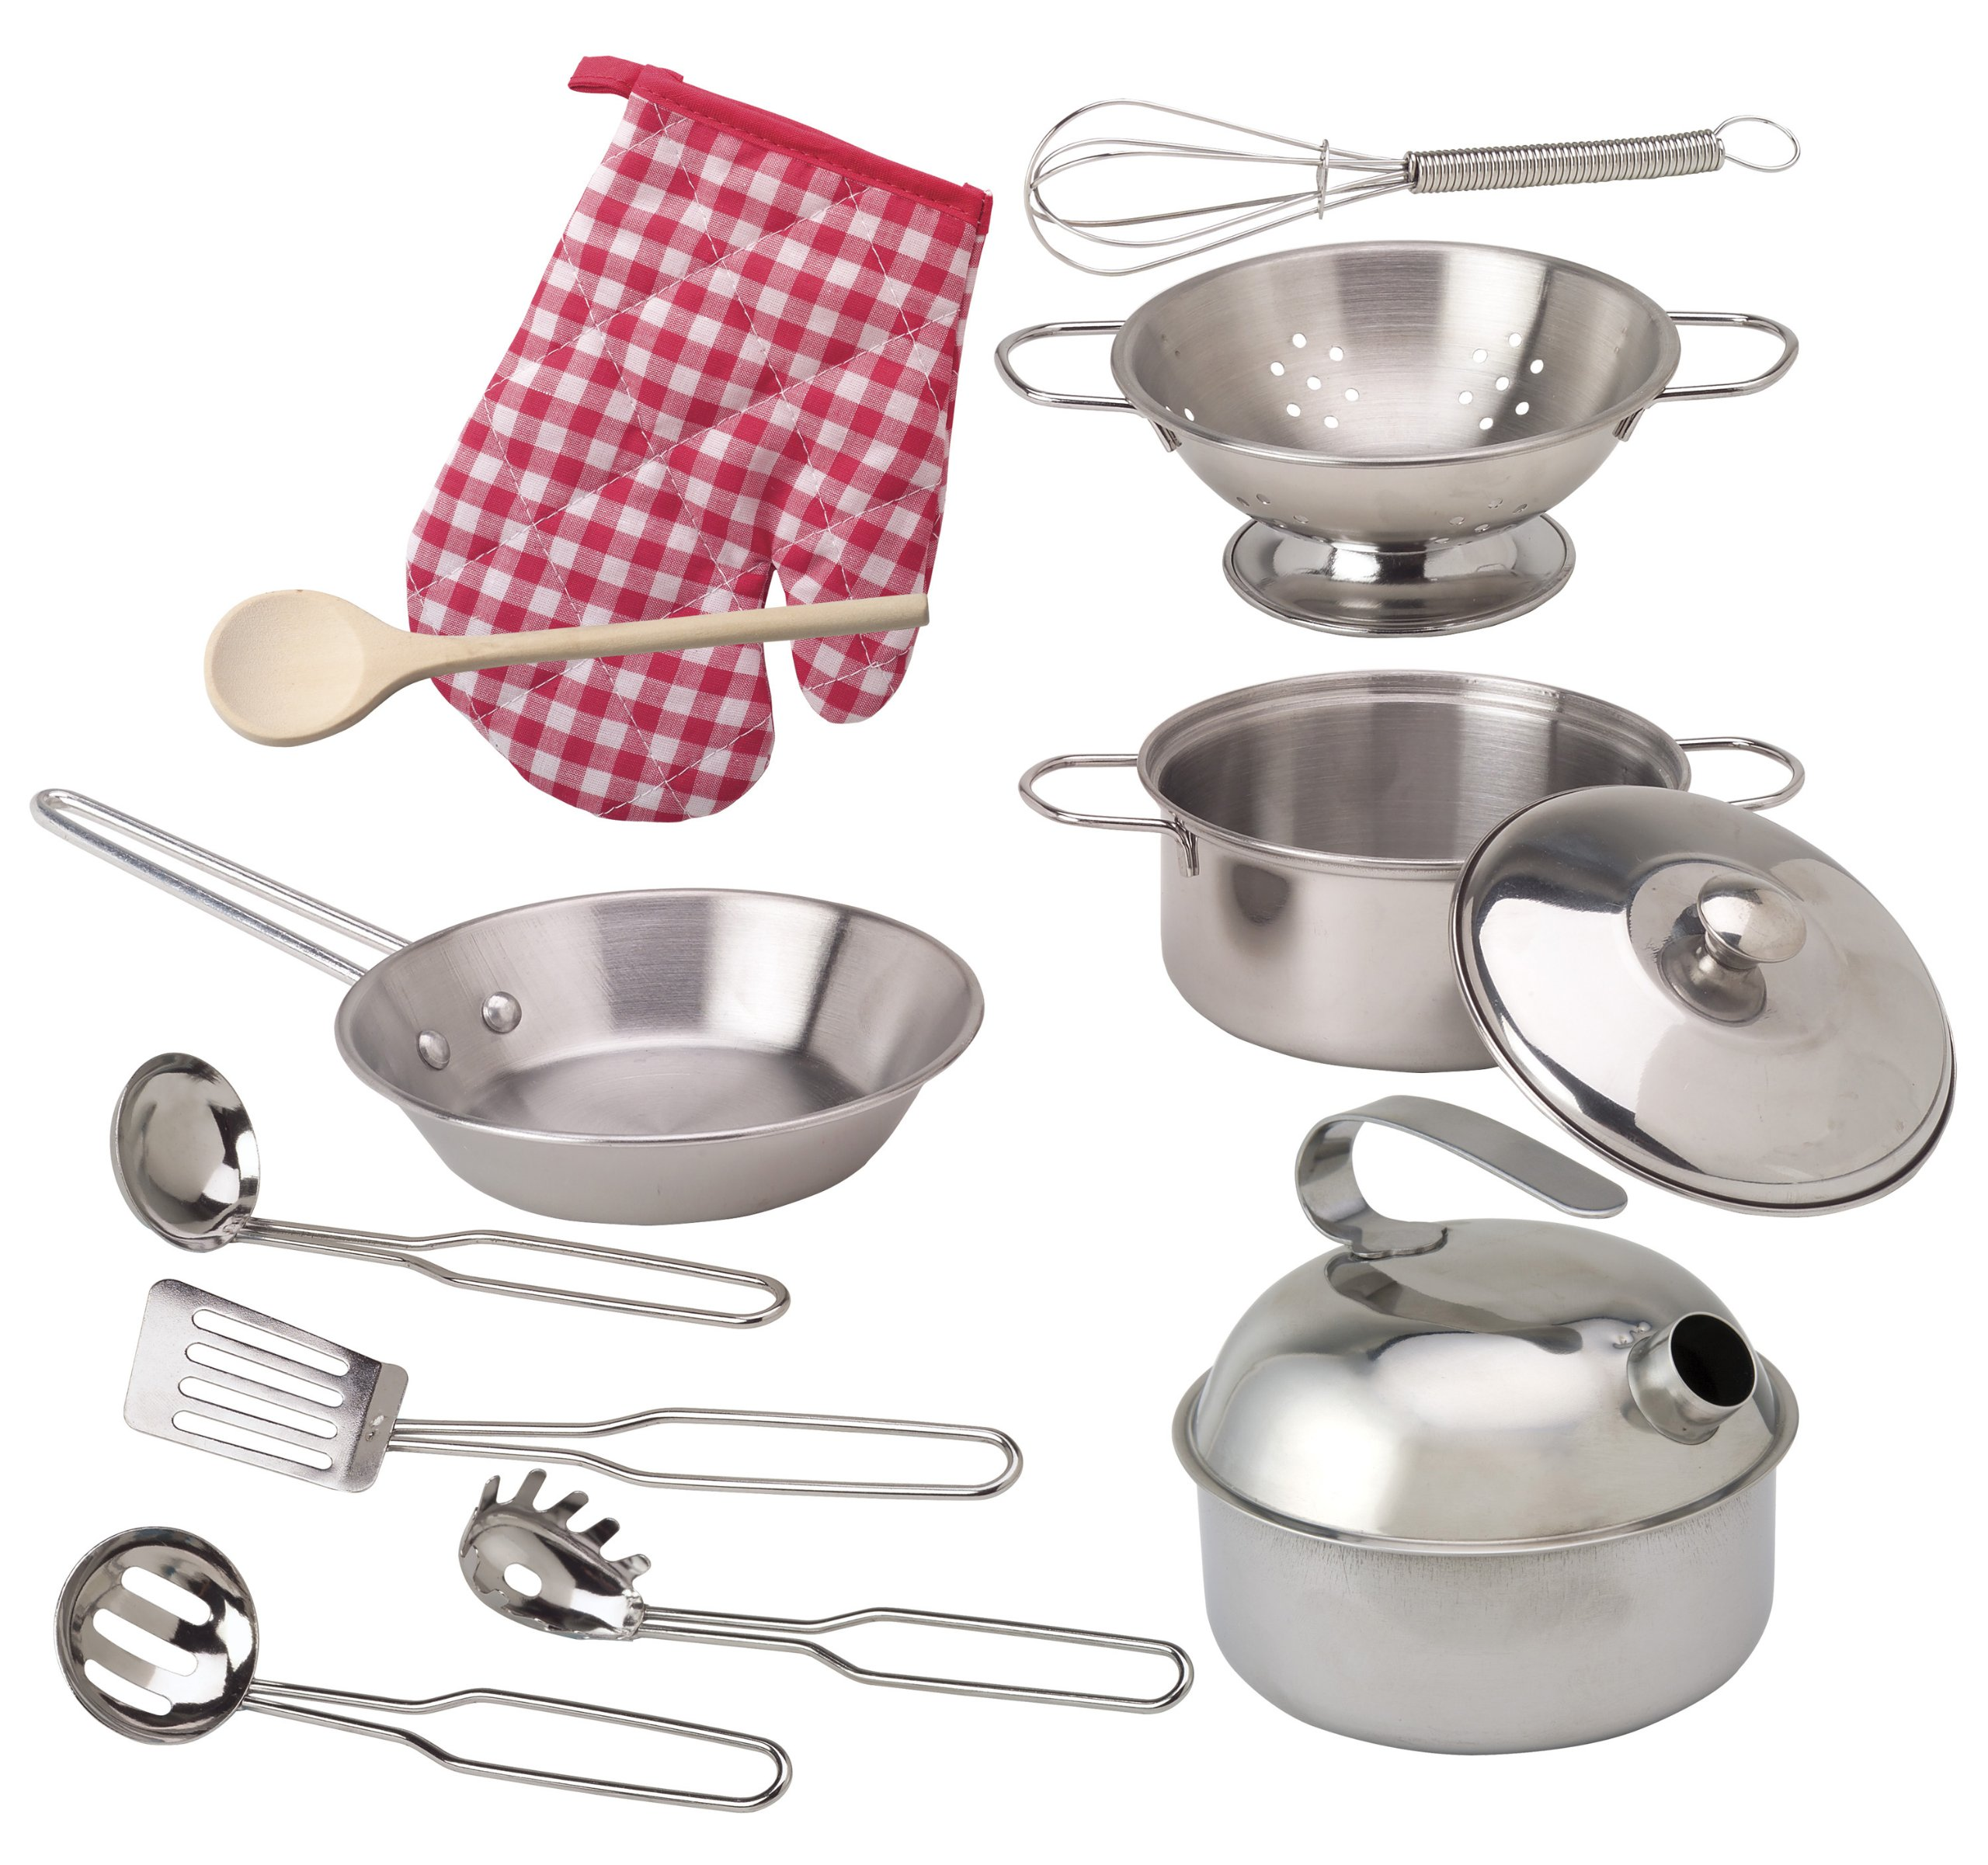 ALEX Toys Deluxe Cooking Set by ALEX Toys (Image #2)